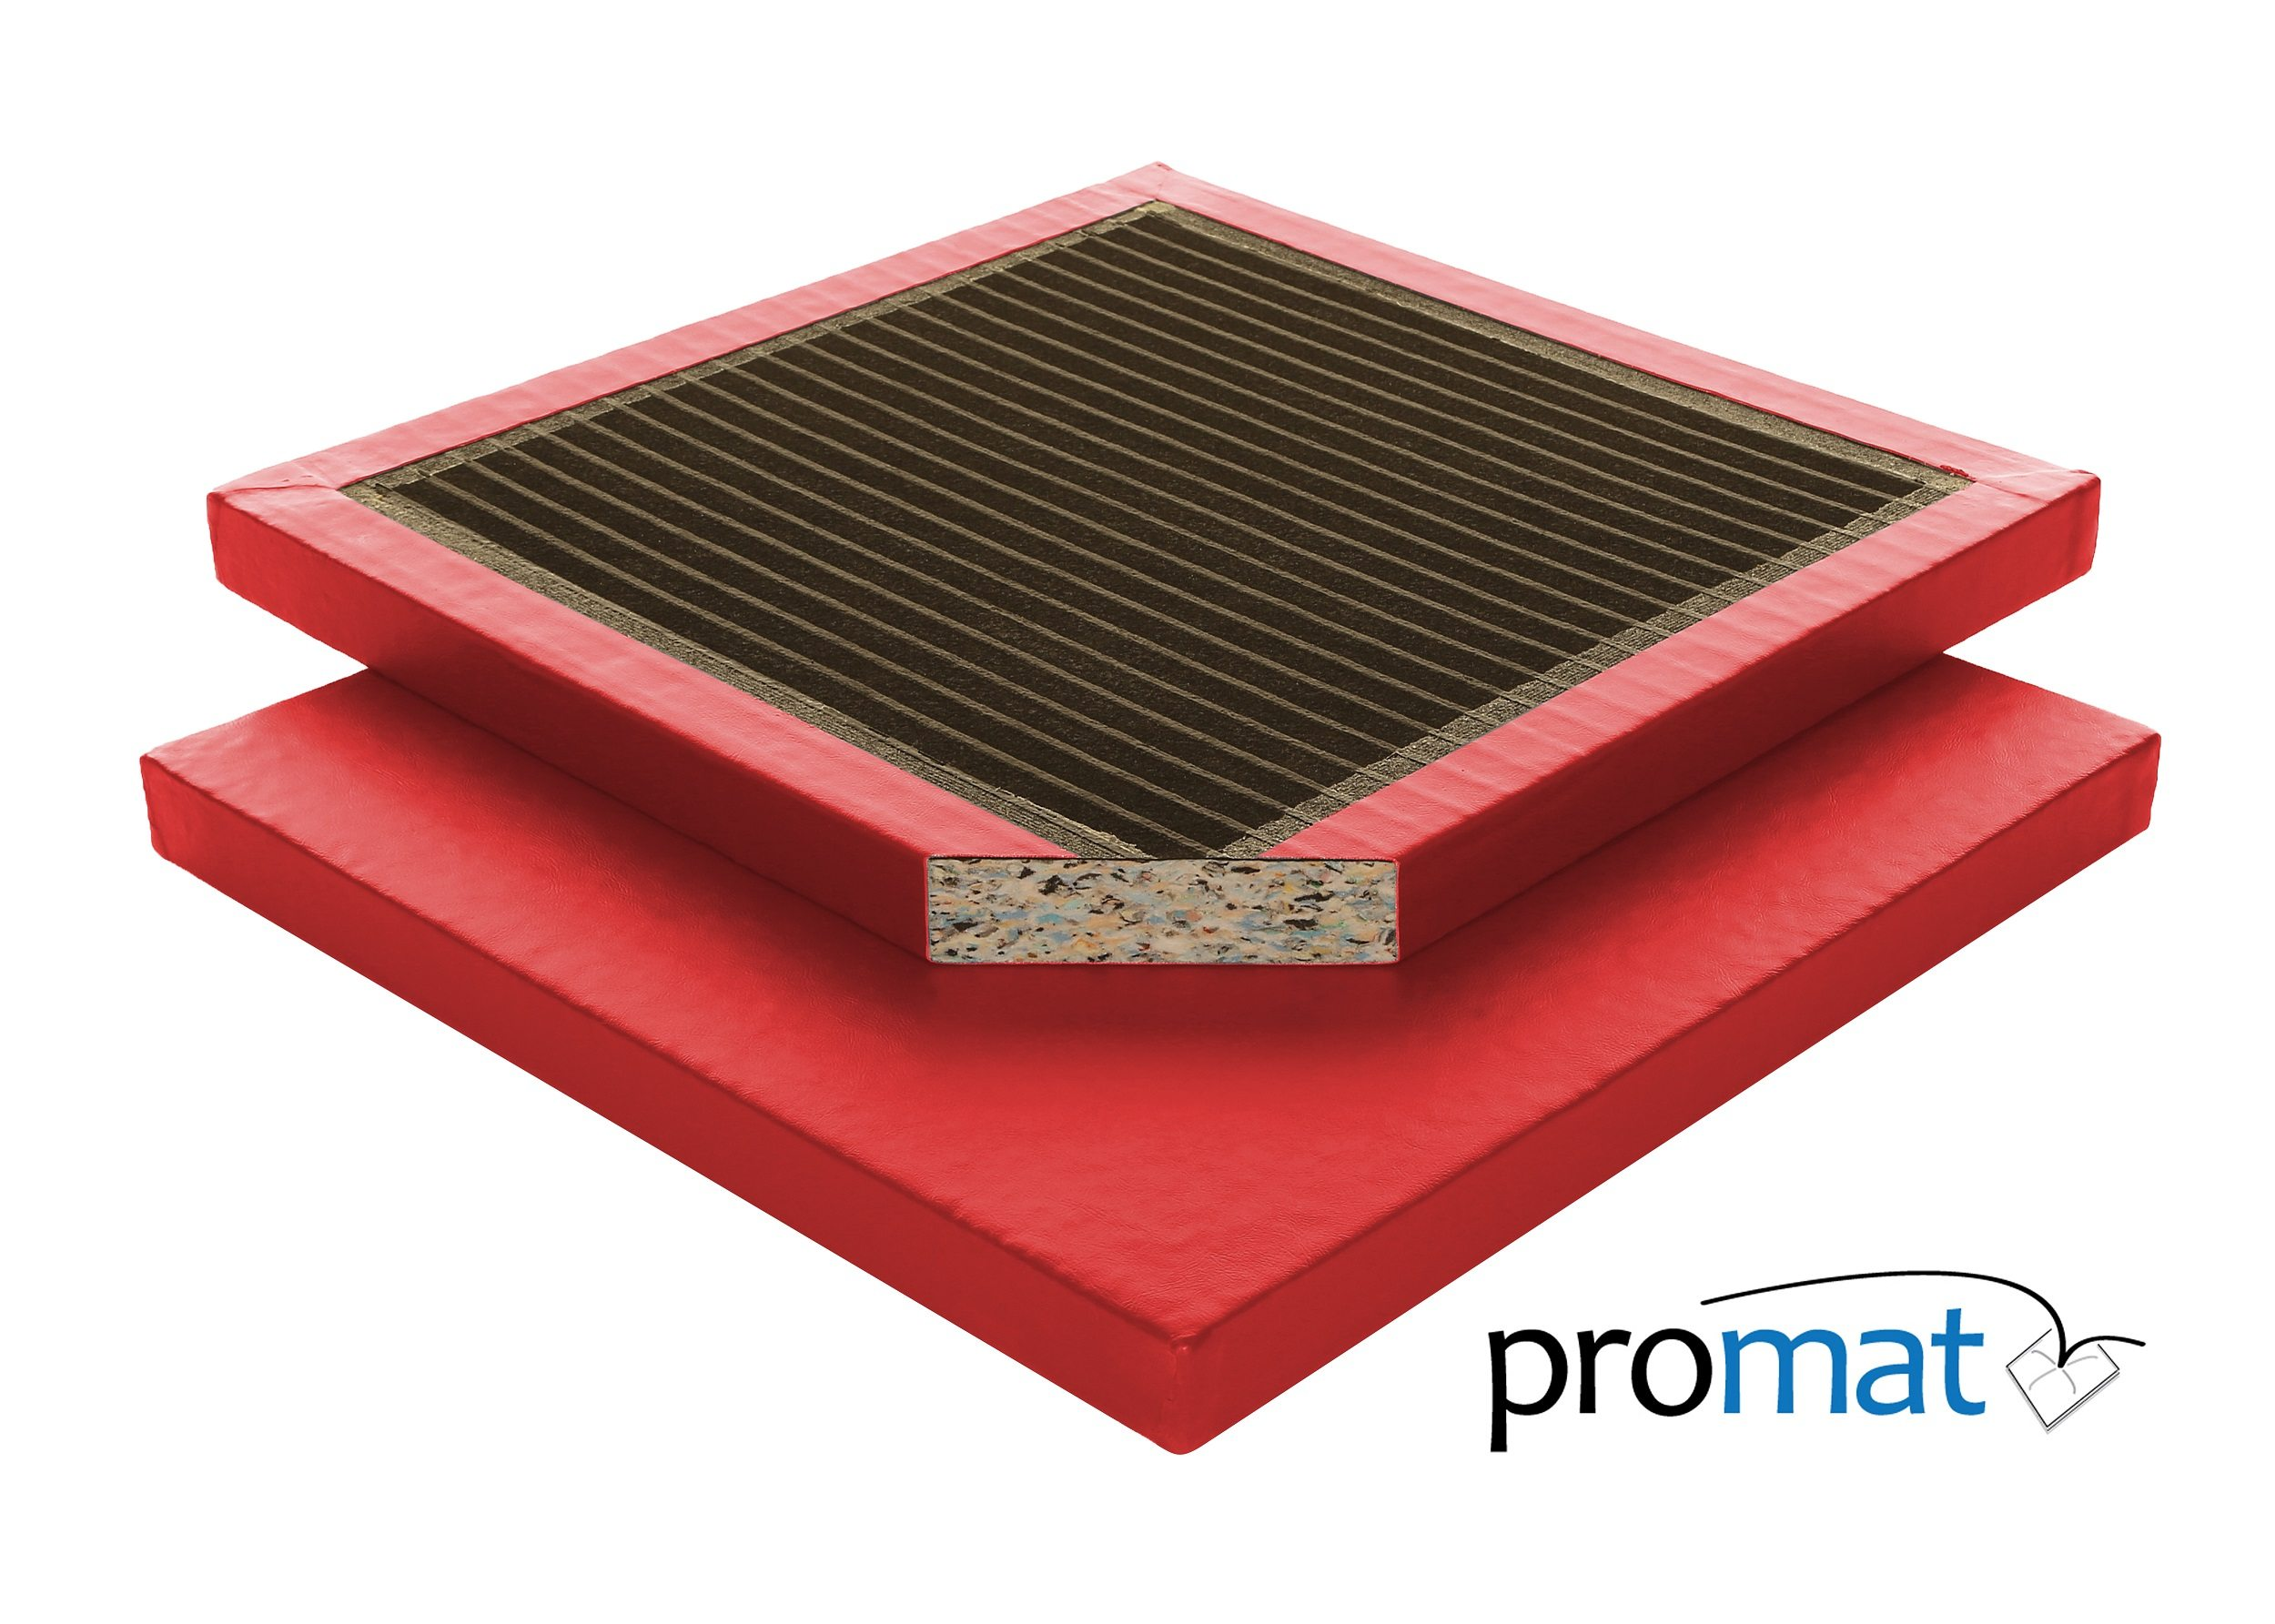 Promat Multipurpose Gym Mat - Red